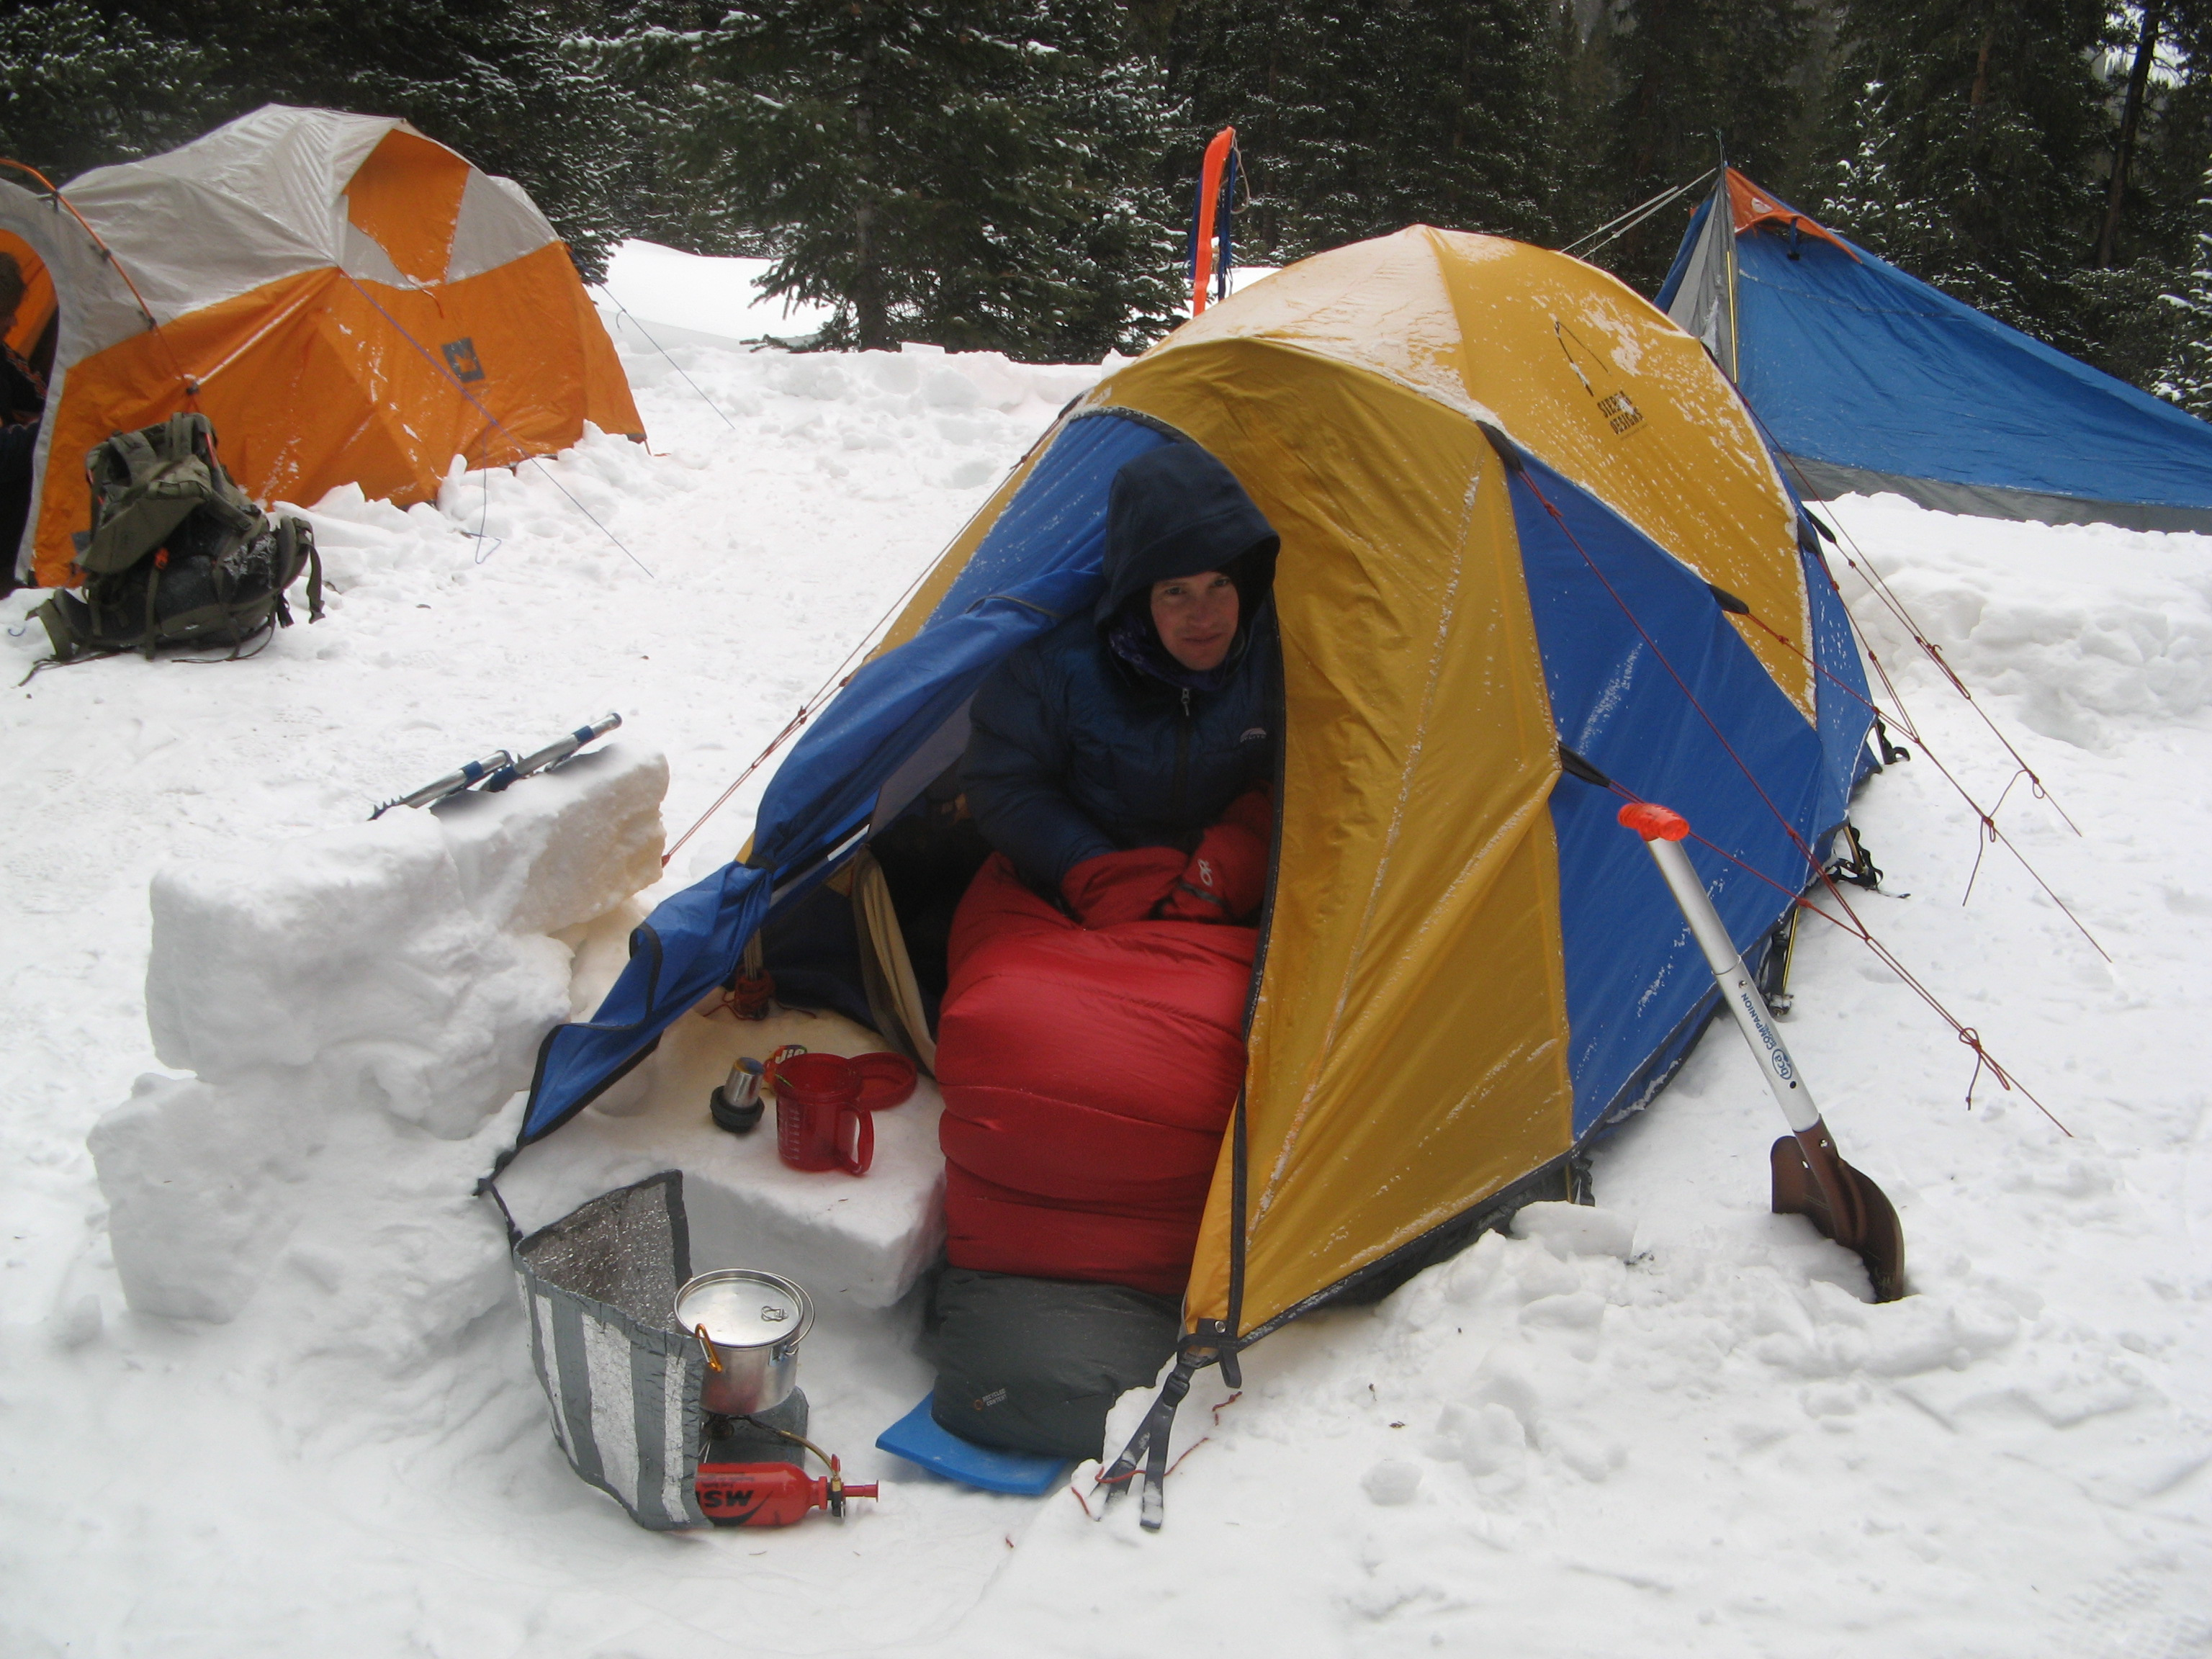 Welcome to Winter Camping School